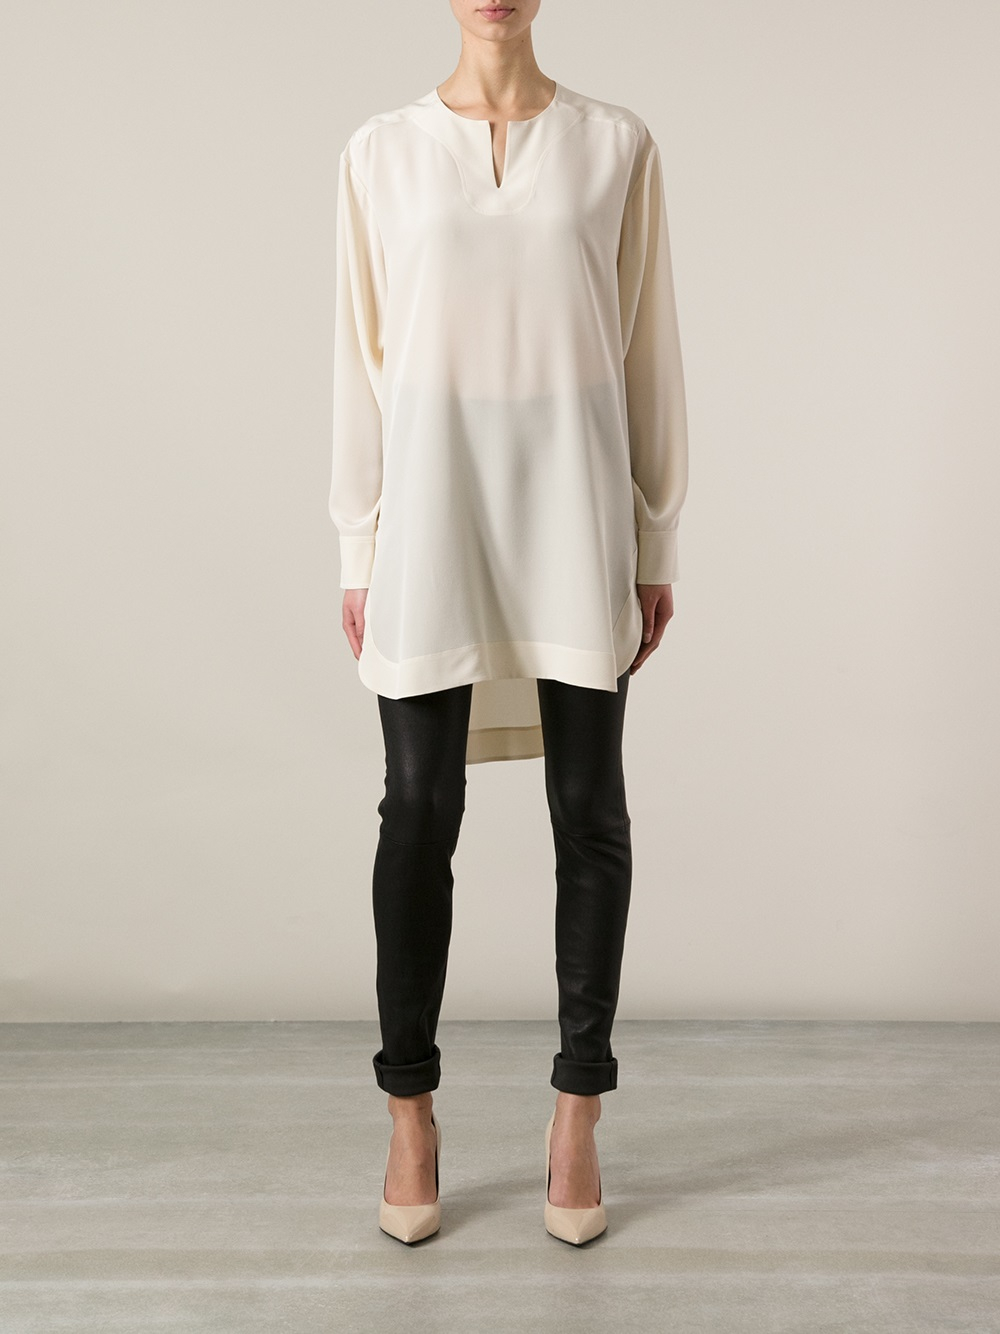 Chloé Tunic Blouse in White | Lyst